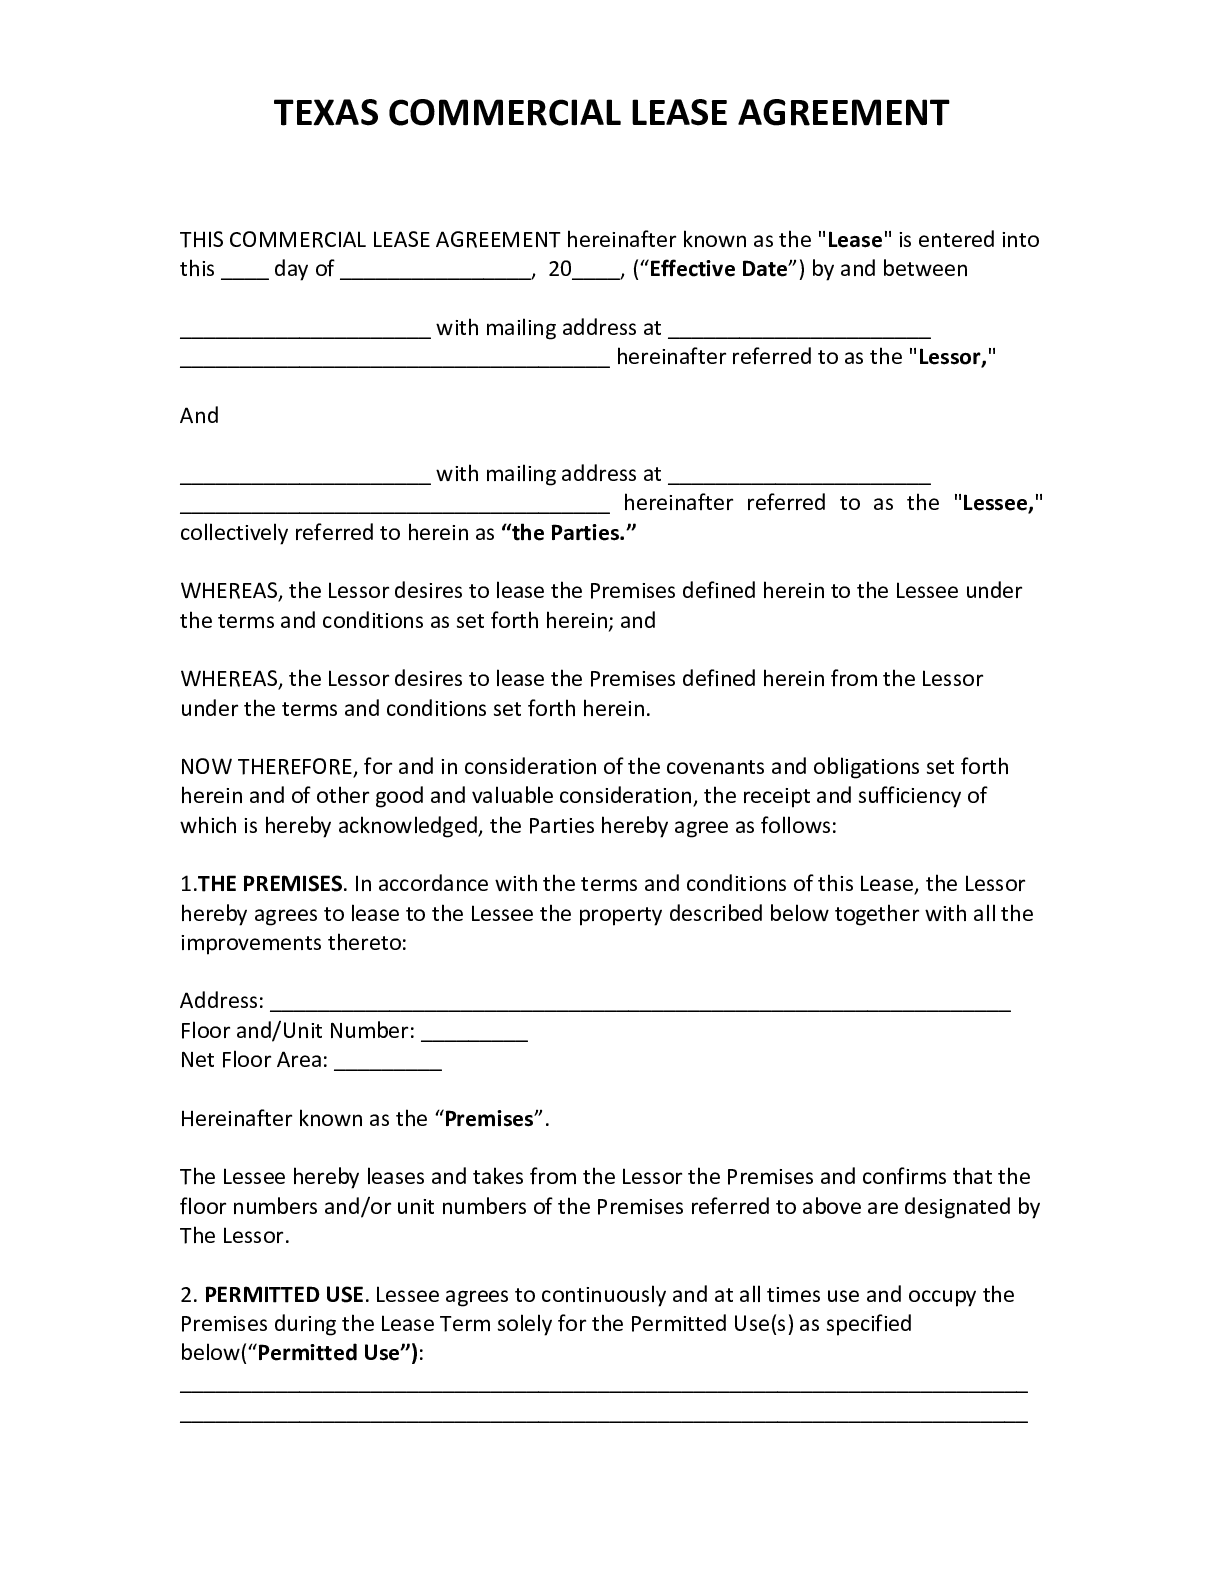 Customize your own contract with eforms. Official Texas Commercial Lease Agreement 2021 Pdf Form